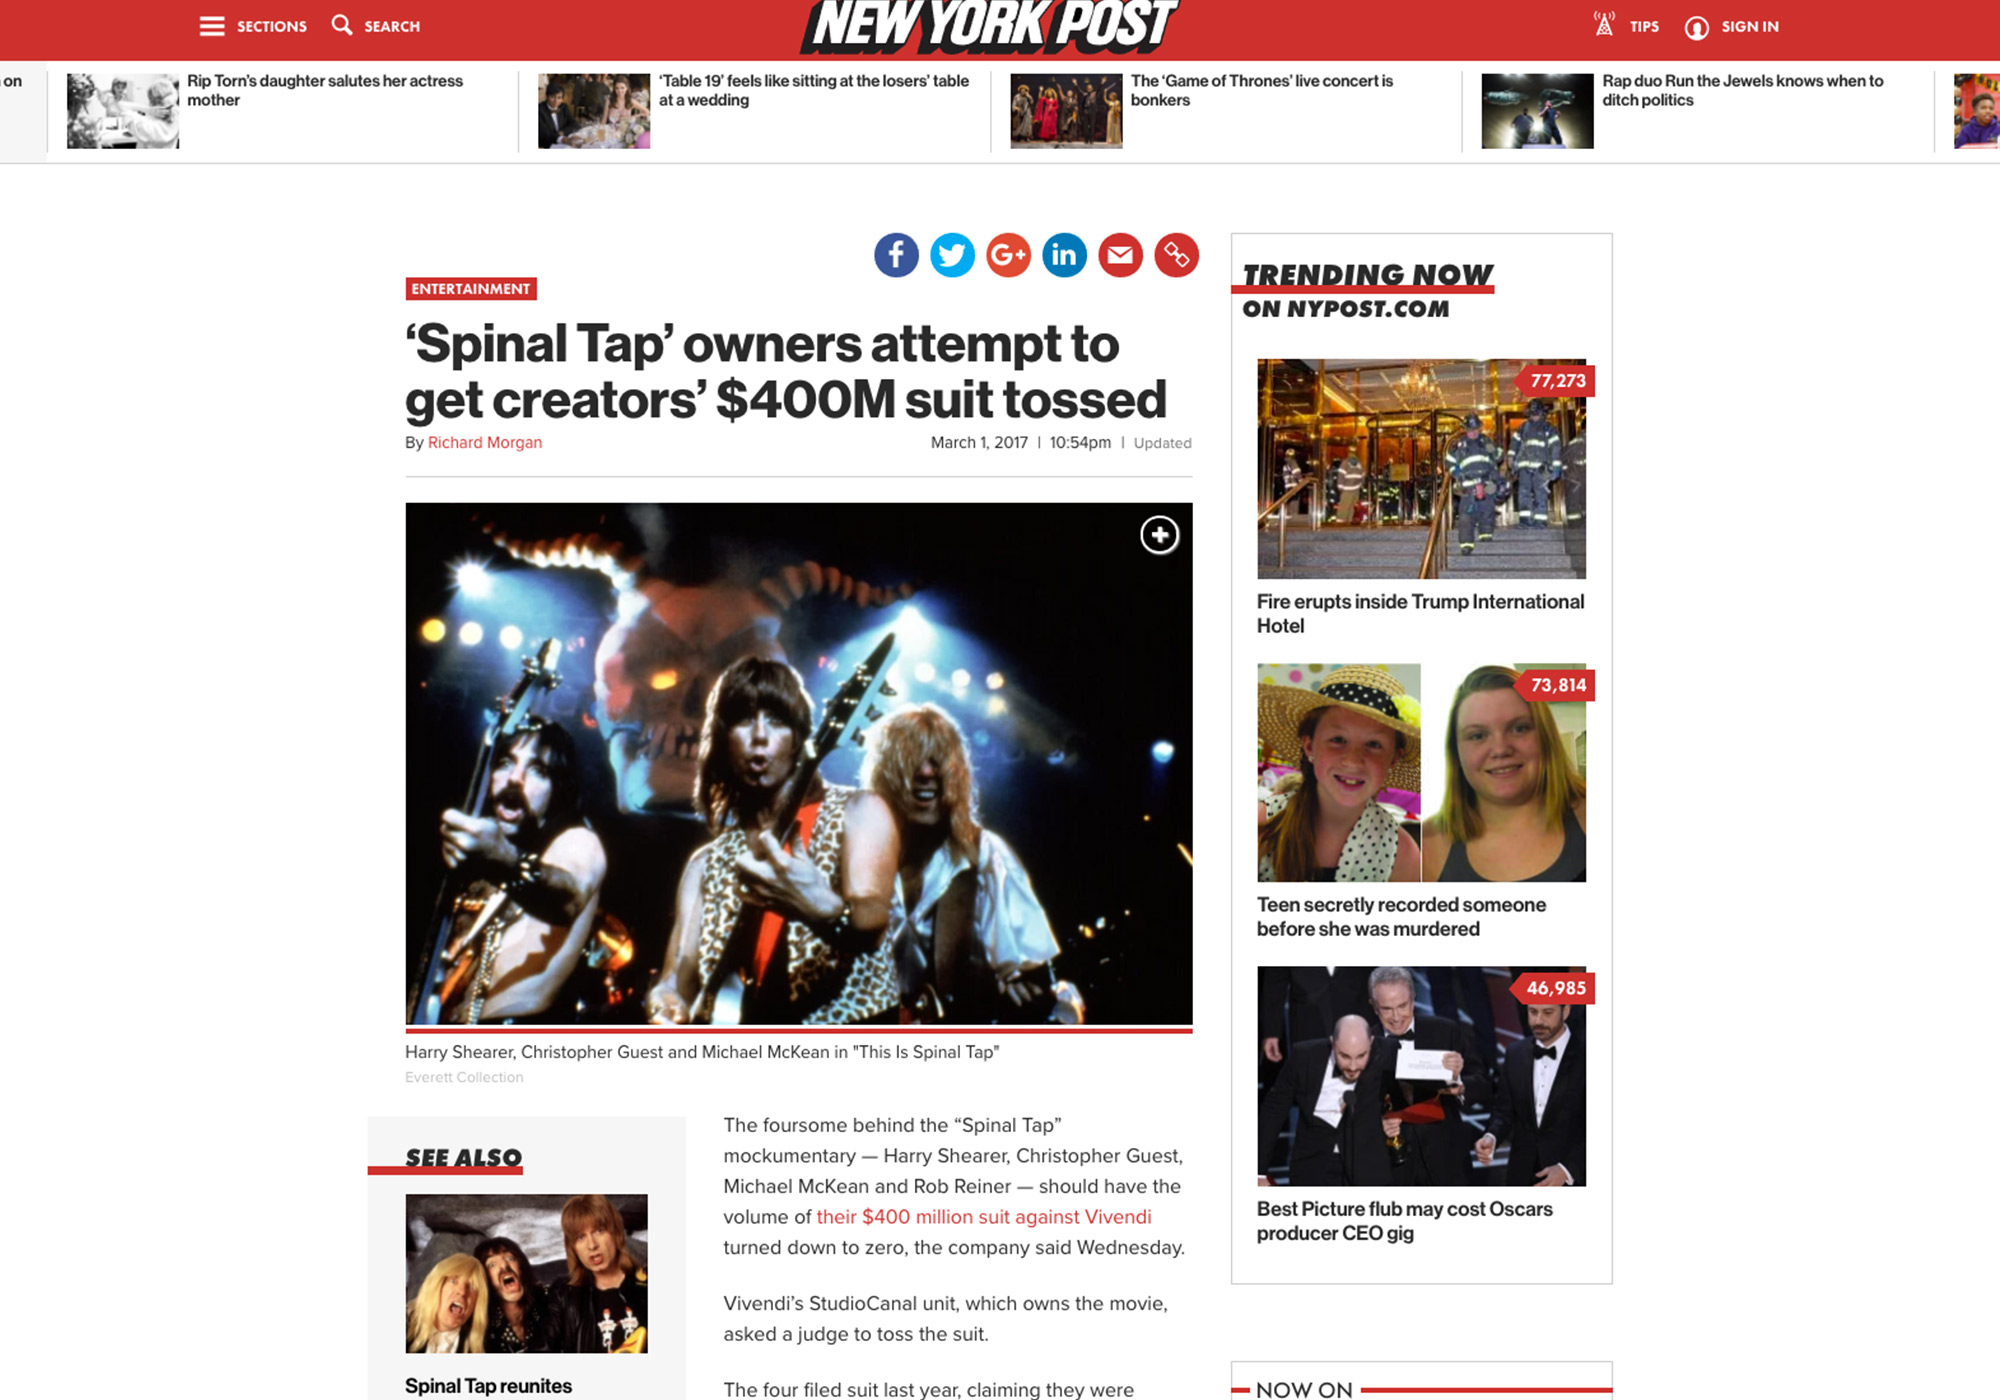 Fairness Rocks News 'Spinal Tap' owners attempt to get creators' $400M suit tossed